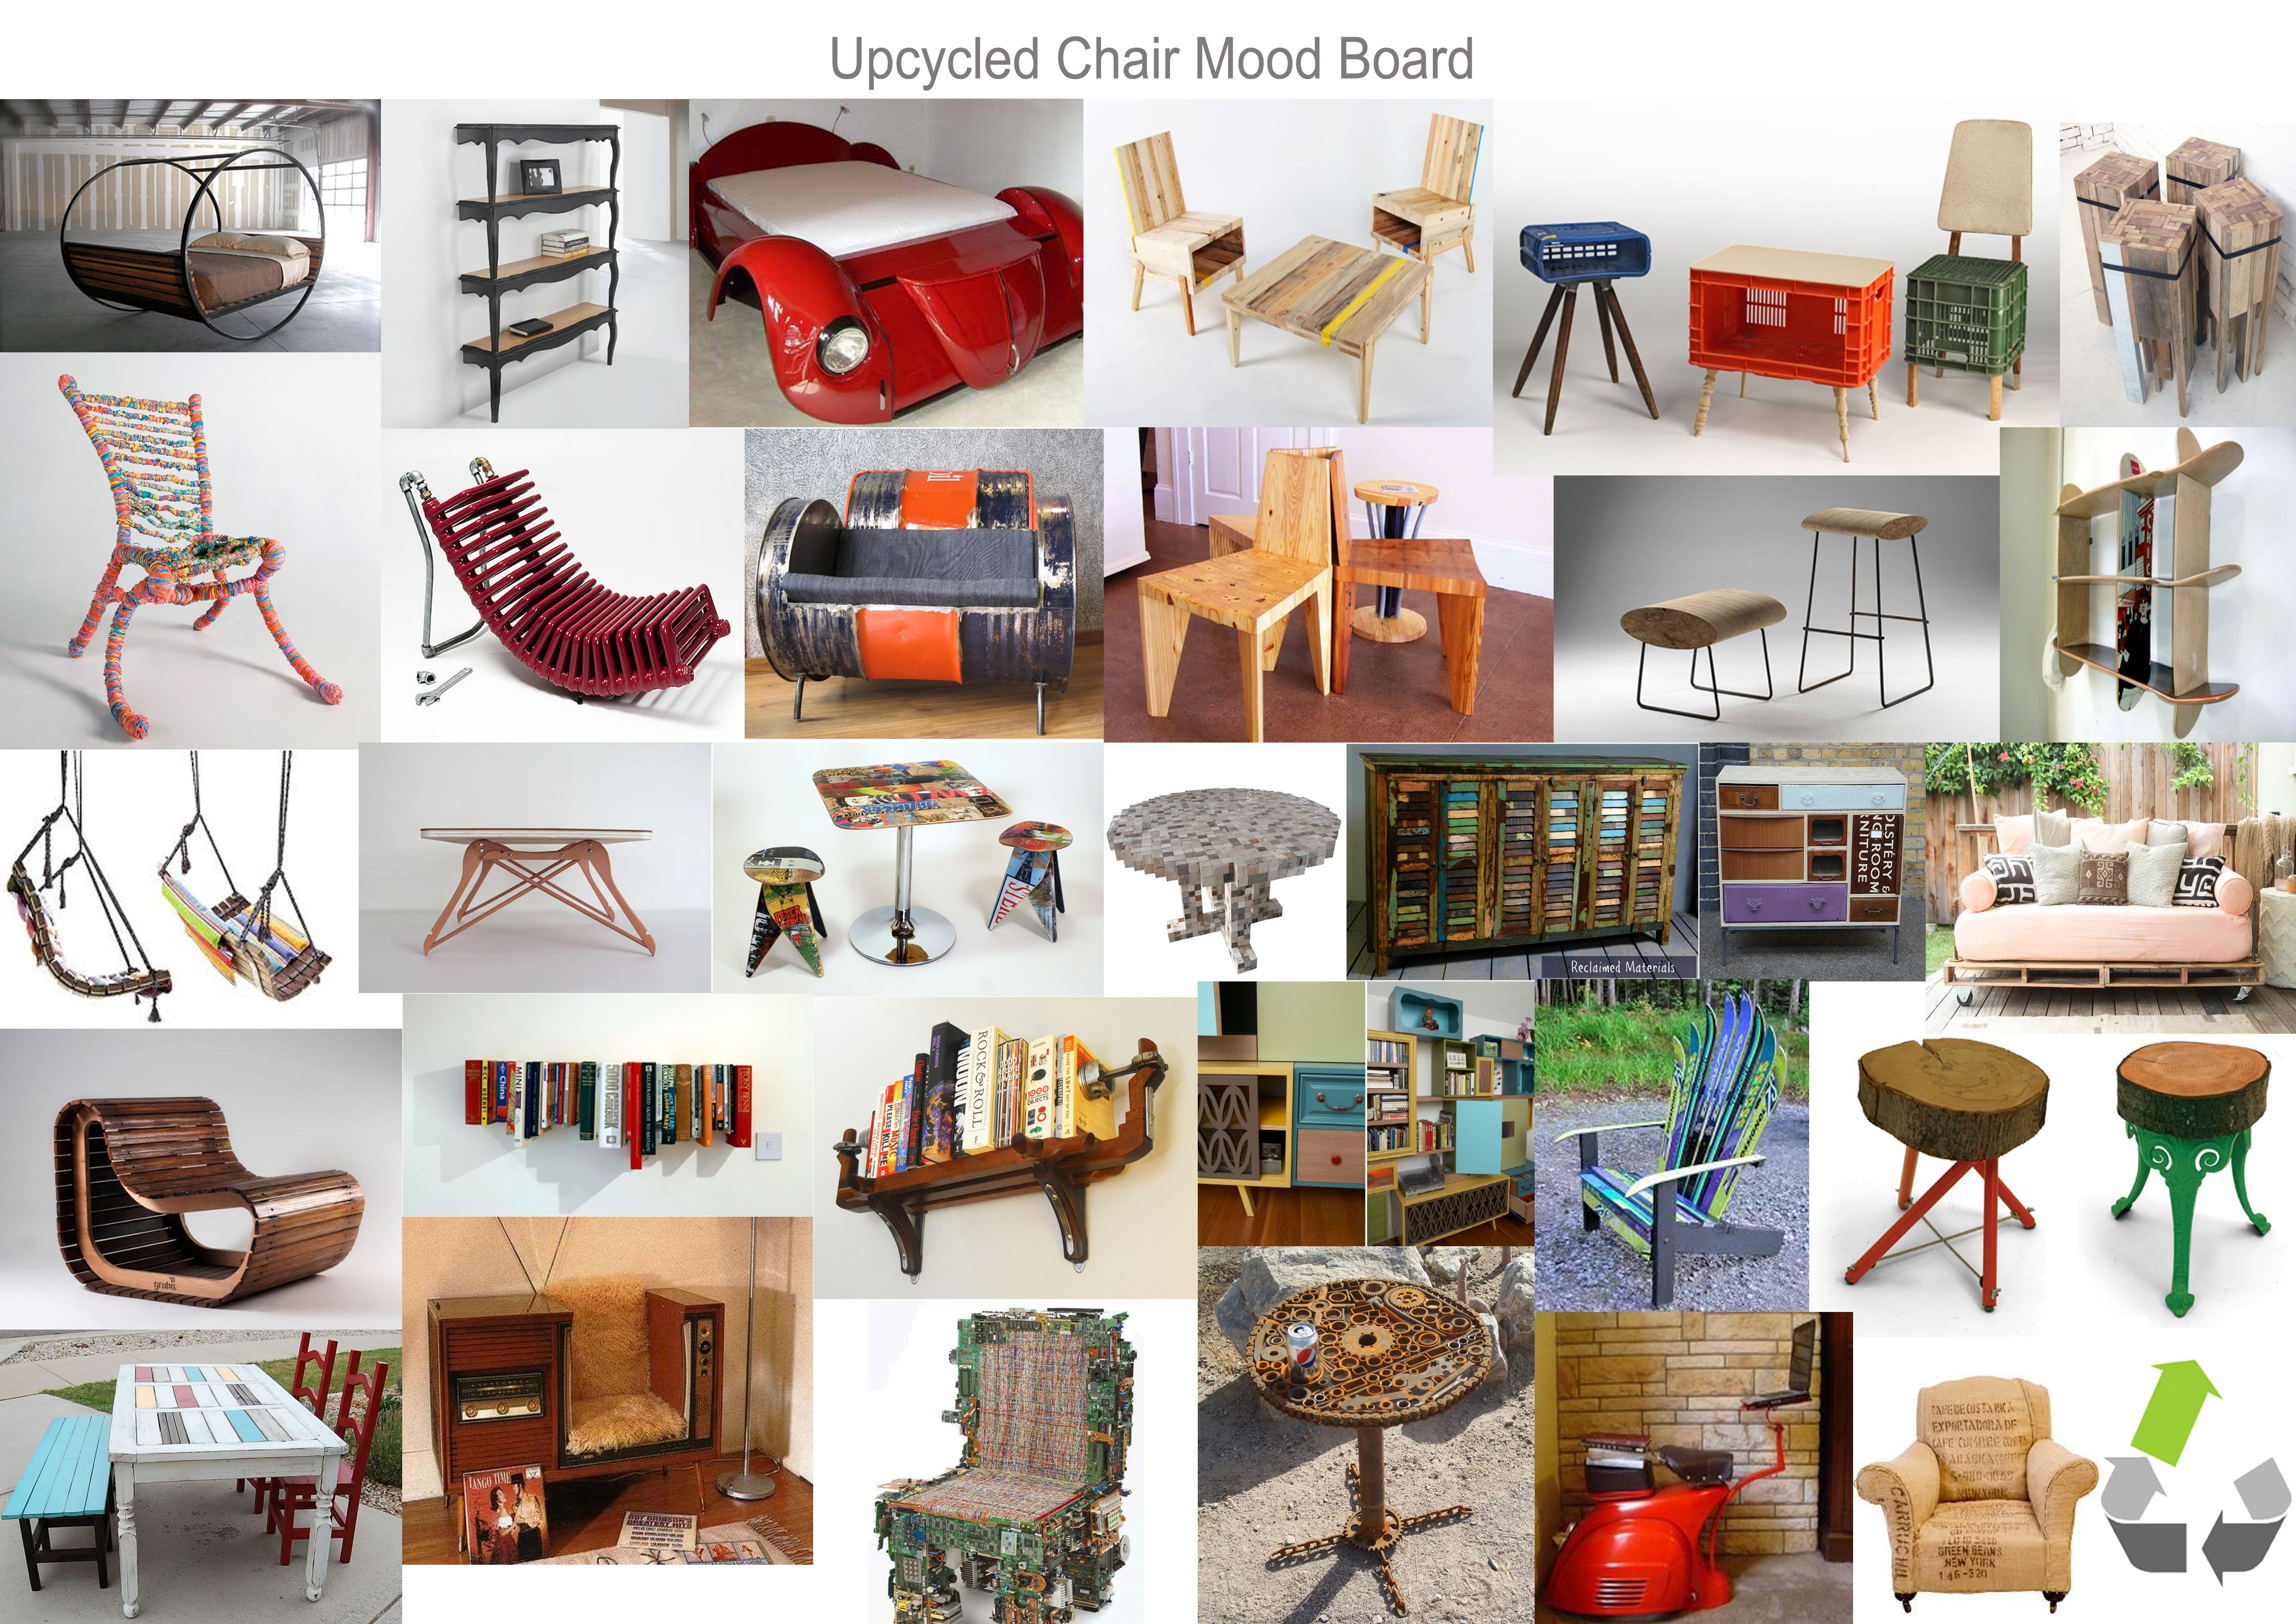 Upcycled Chair Mood Board (4961 3508)